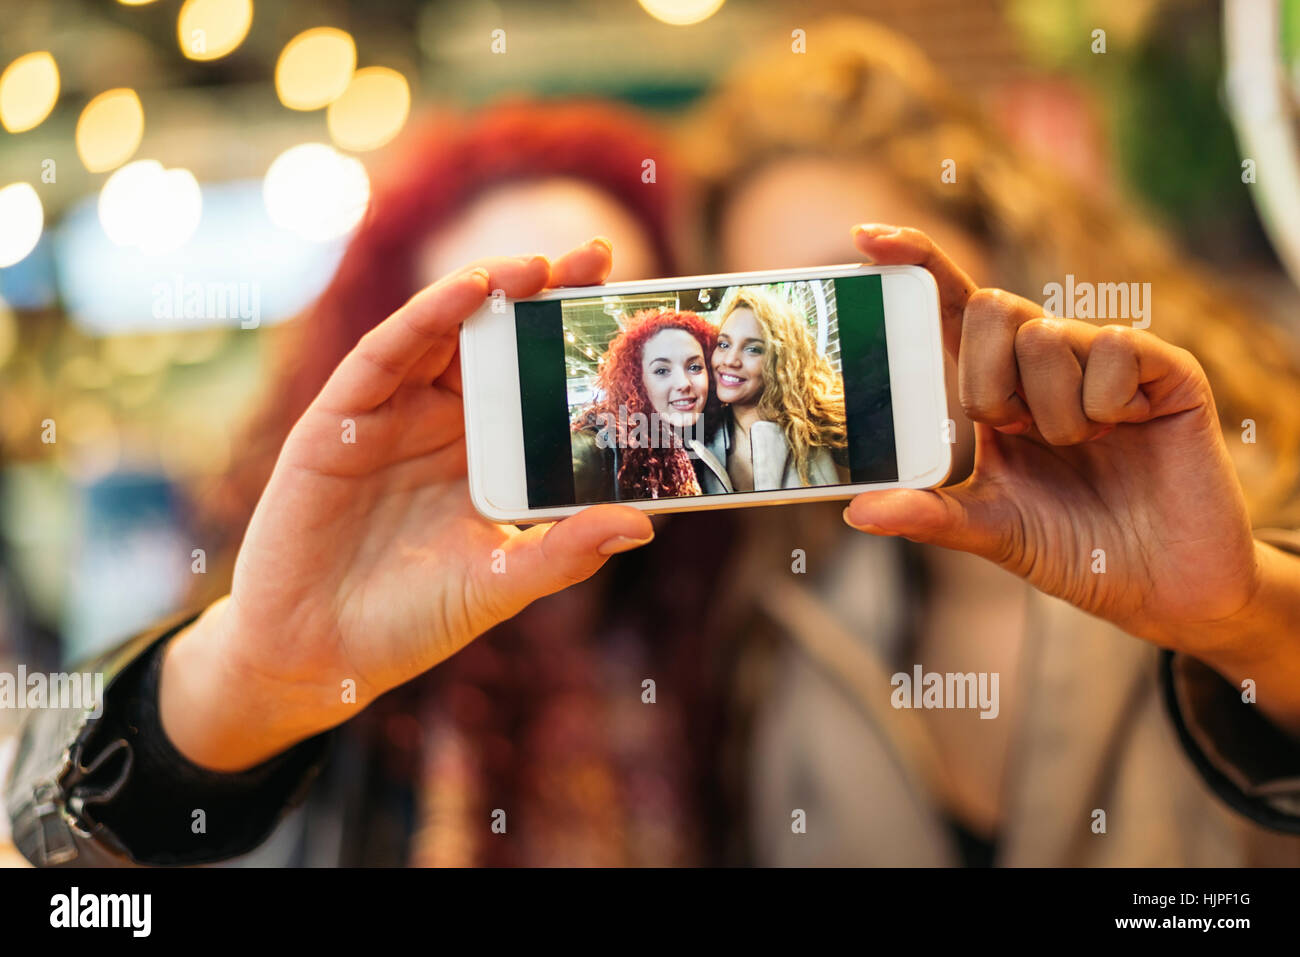 Young friends taking a selfie with cellphone in a restaurant bar - Stock Image